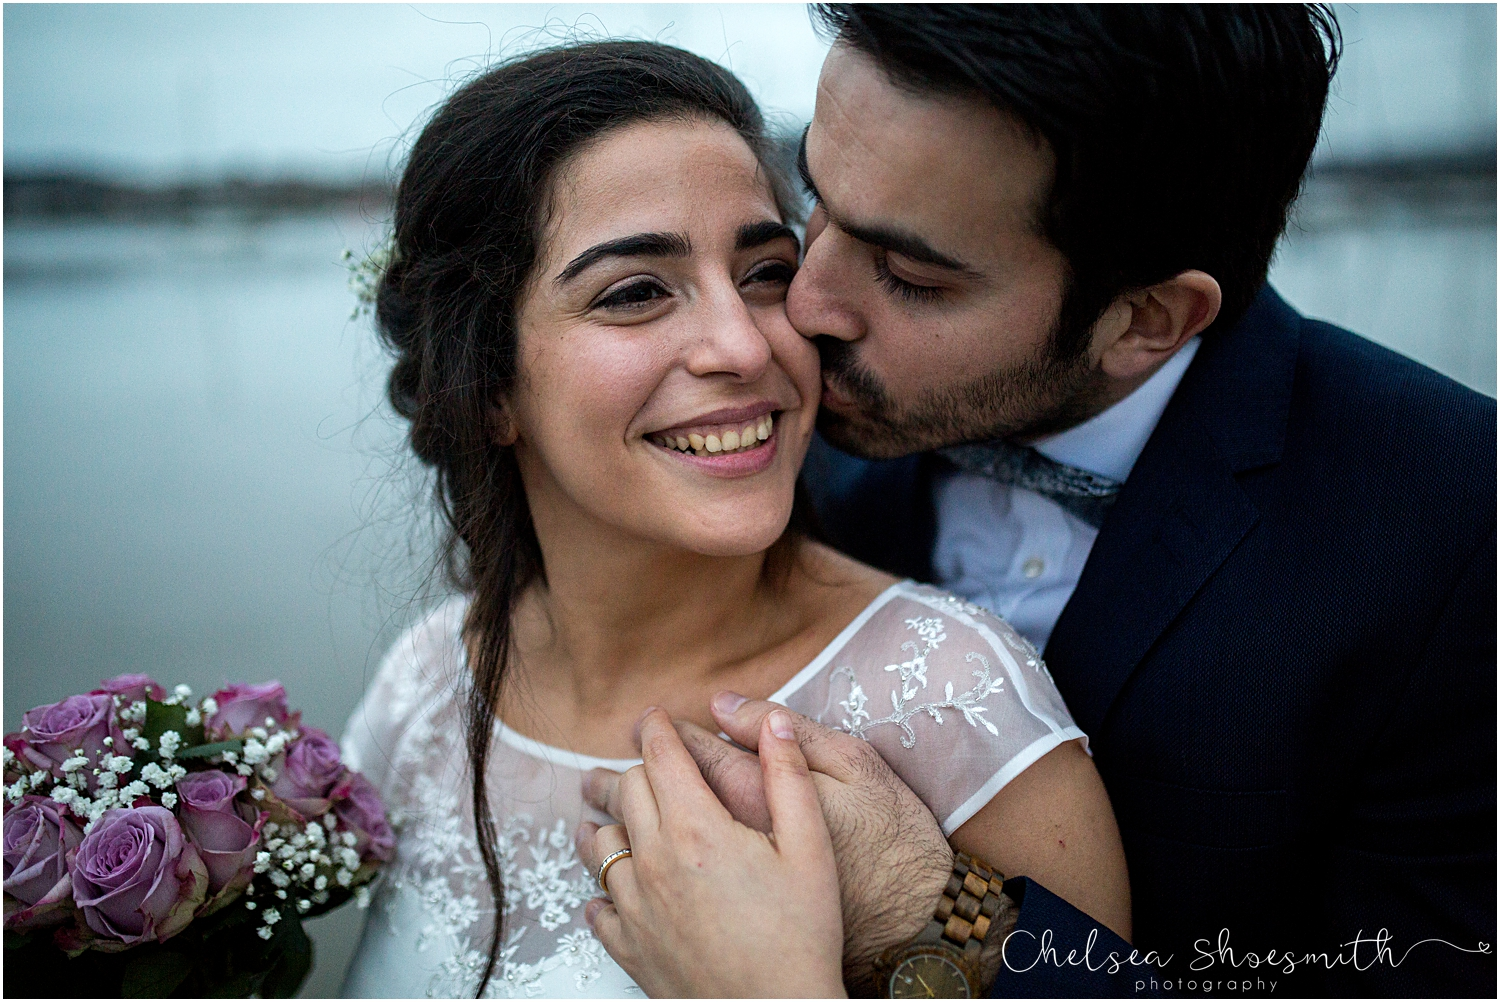 Zahara and Yashar - Chelsea Shoesmith Photography (148 of 340)